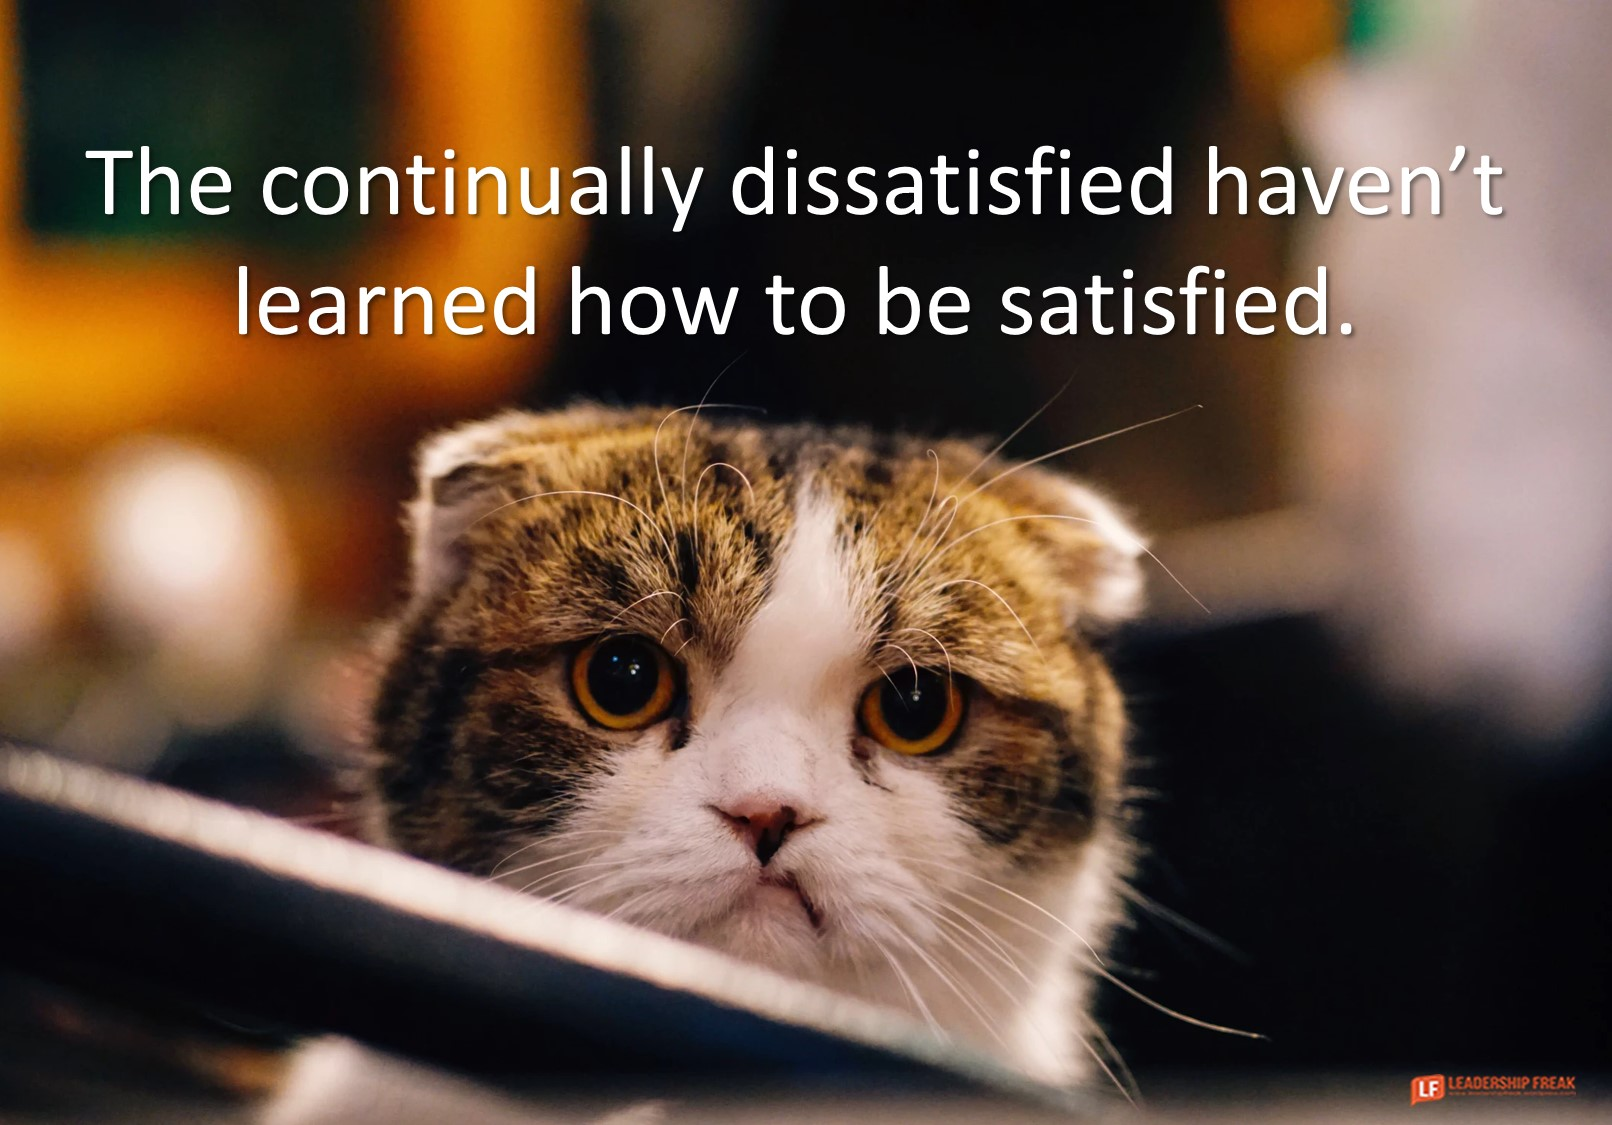 Making the Most of Dissatisfaction